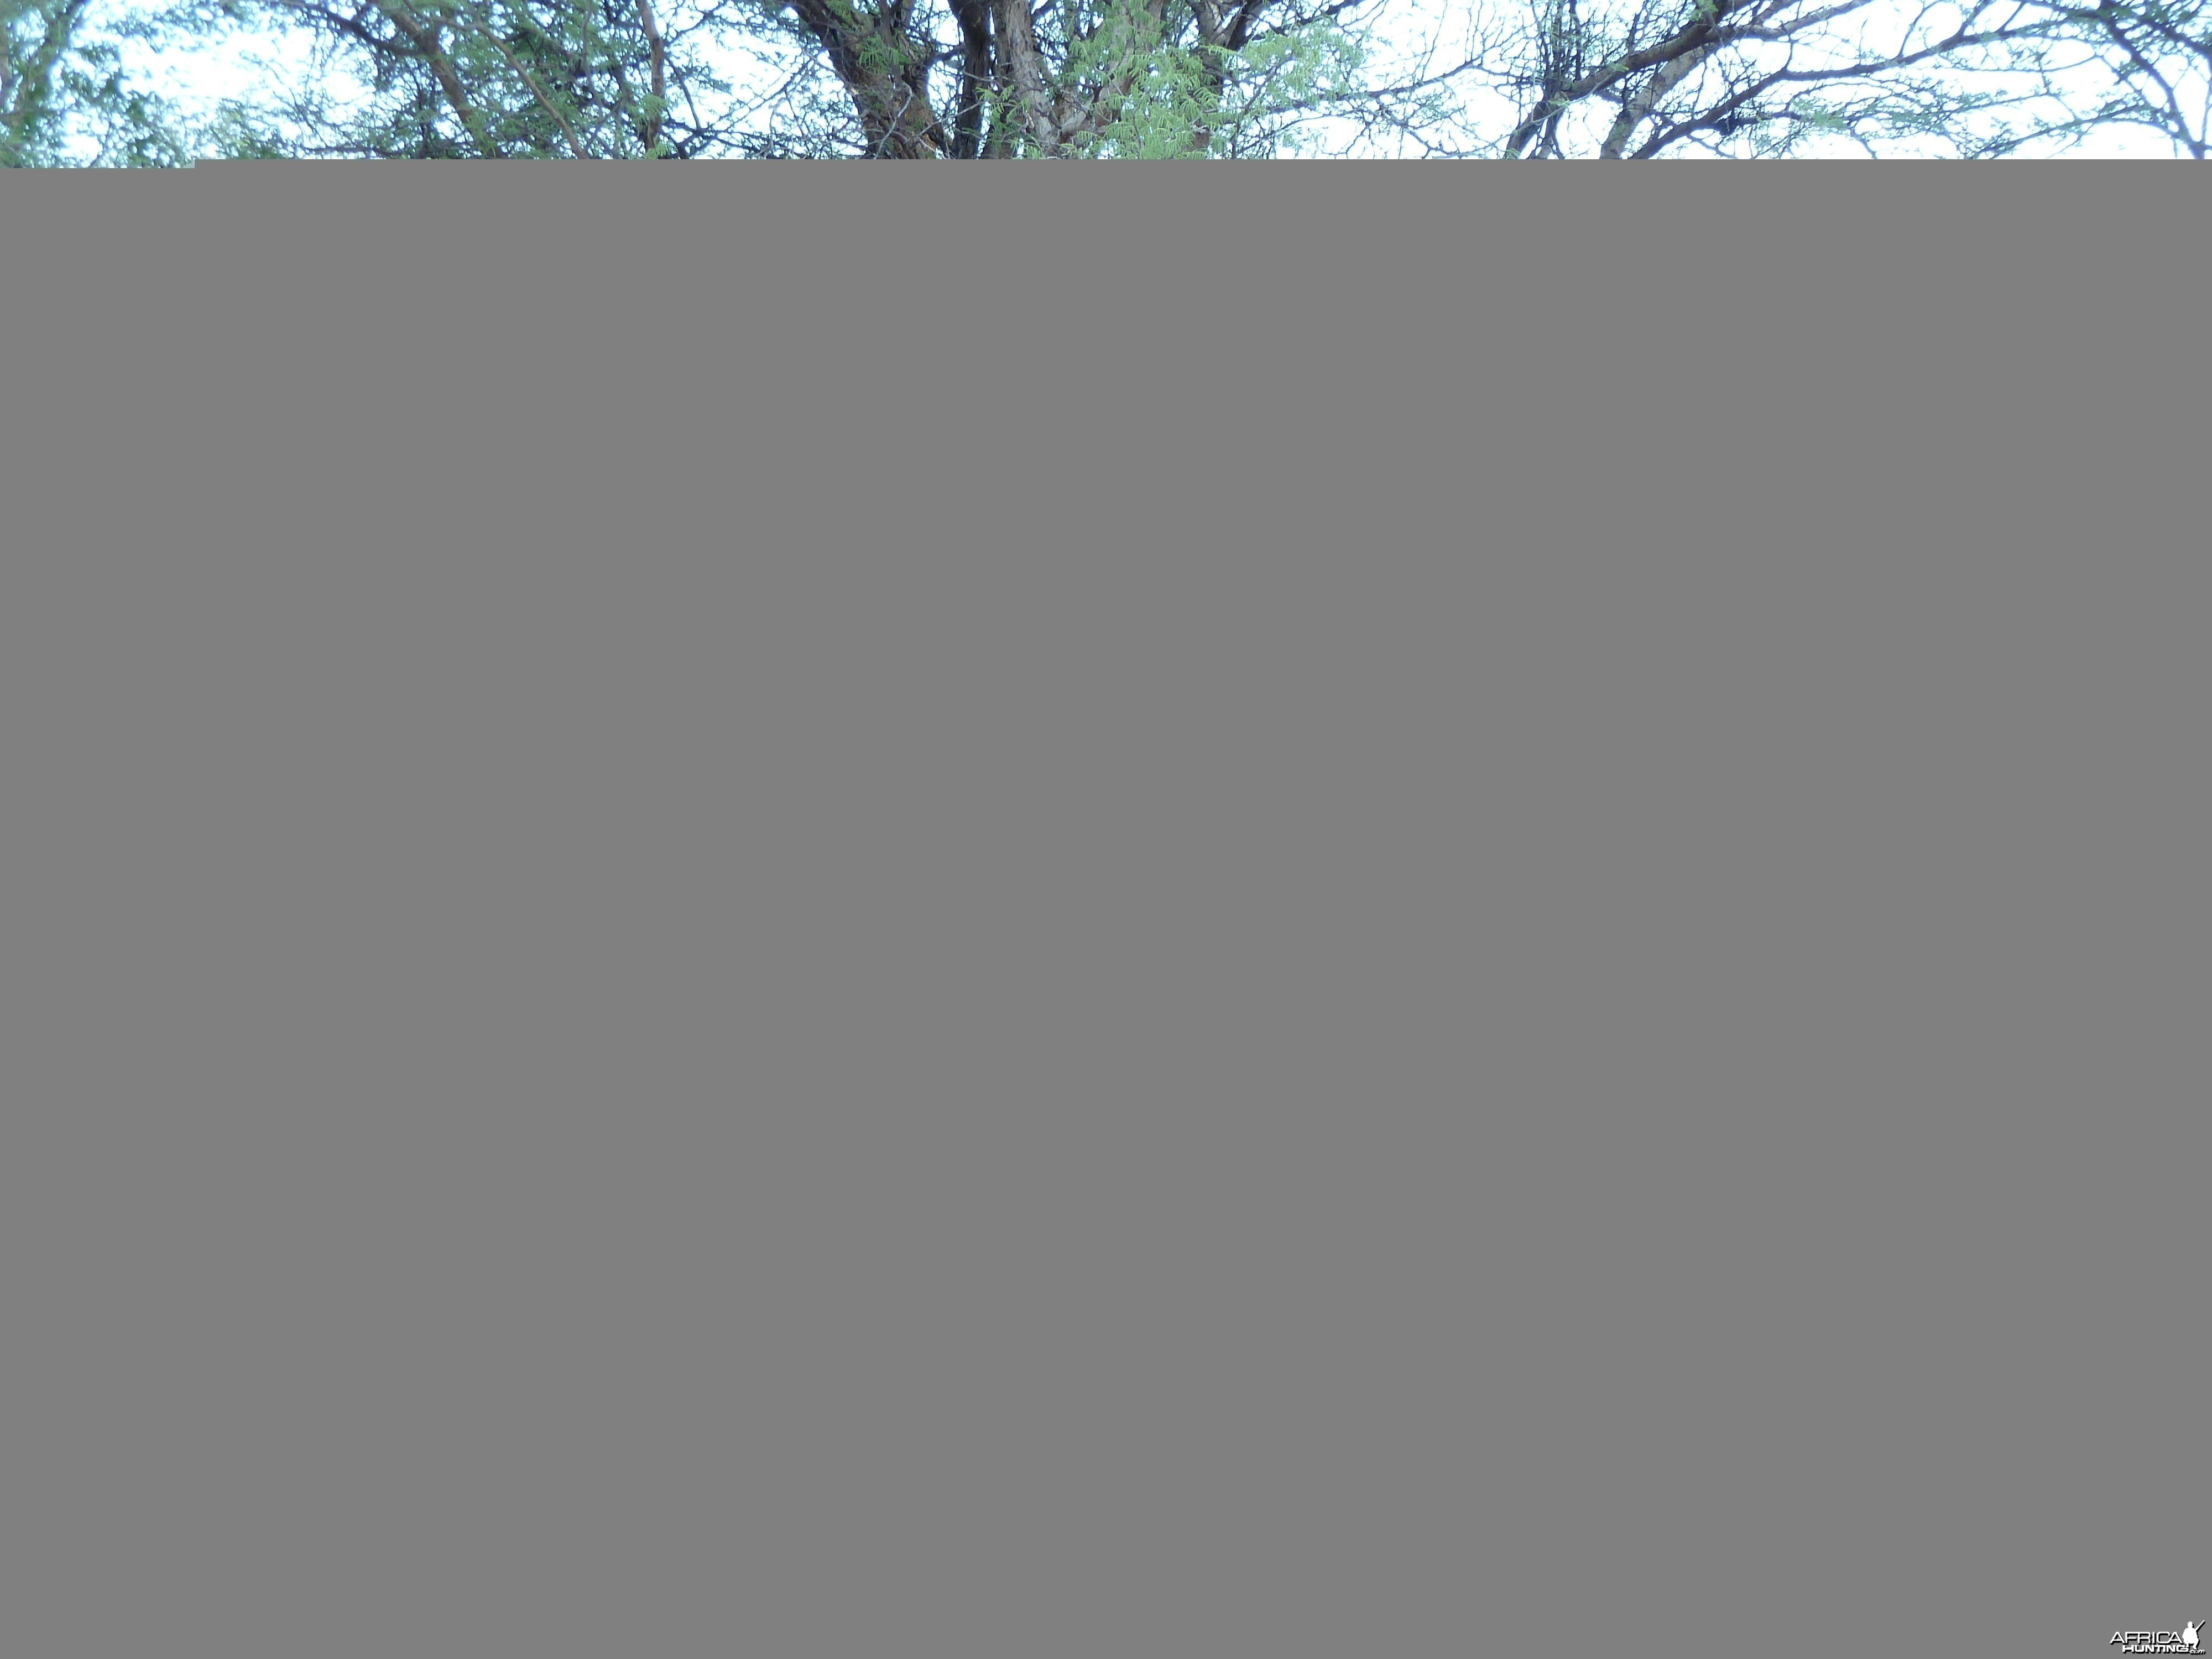 Omajowa termite hill mushrooms Namibia